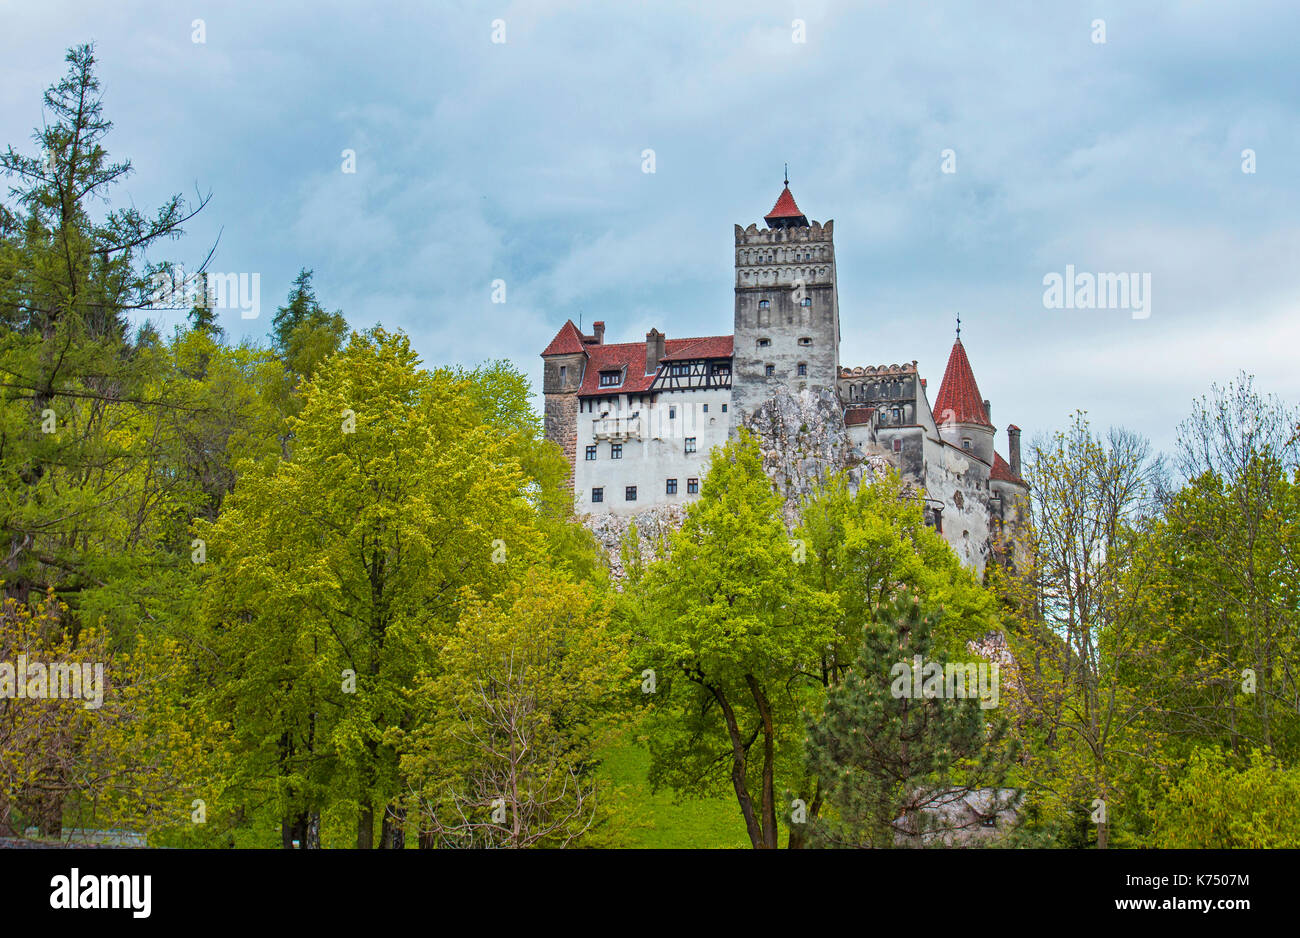 Bran Castle, Draculla Castle, Bran, Brasov County, Carpathian Mountains, Transylvania, Romania - Stock Image